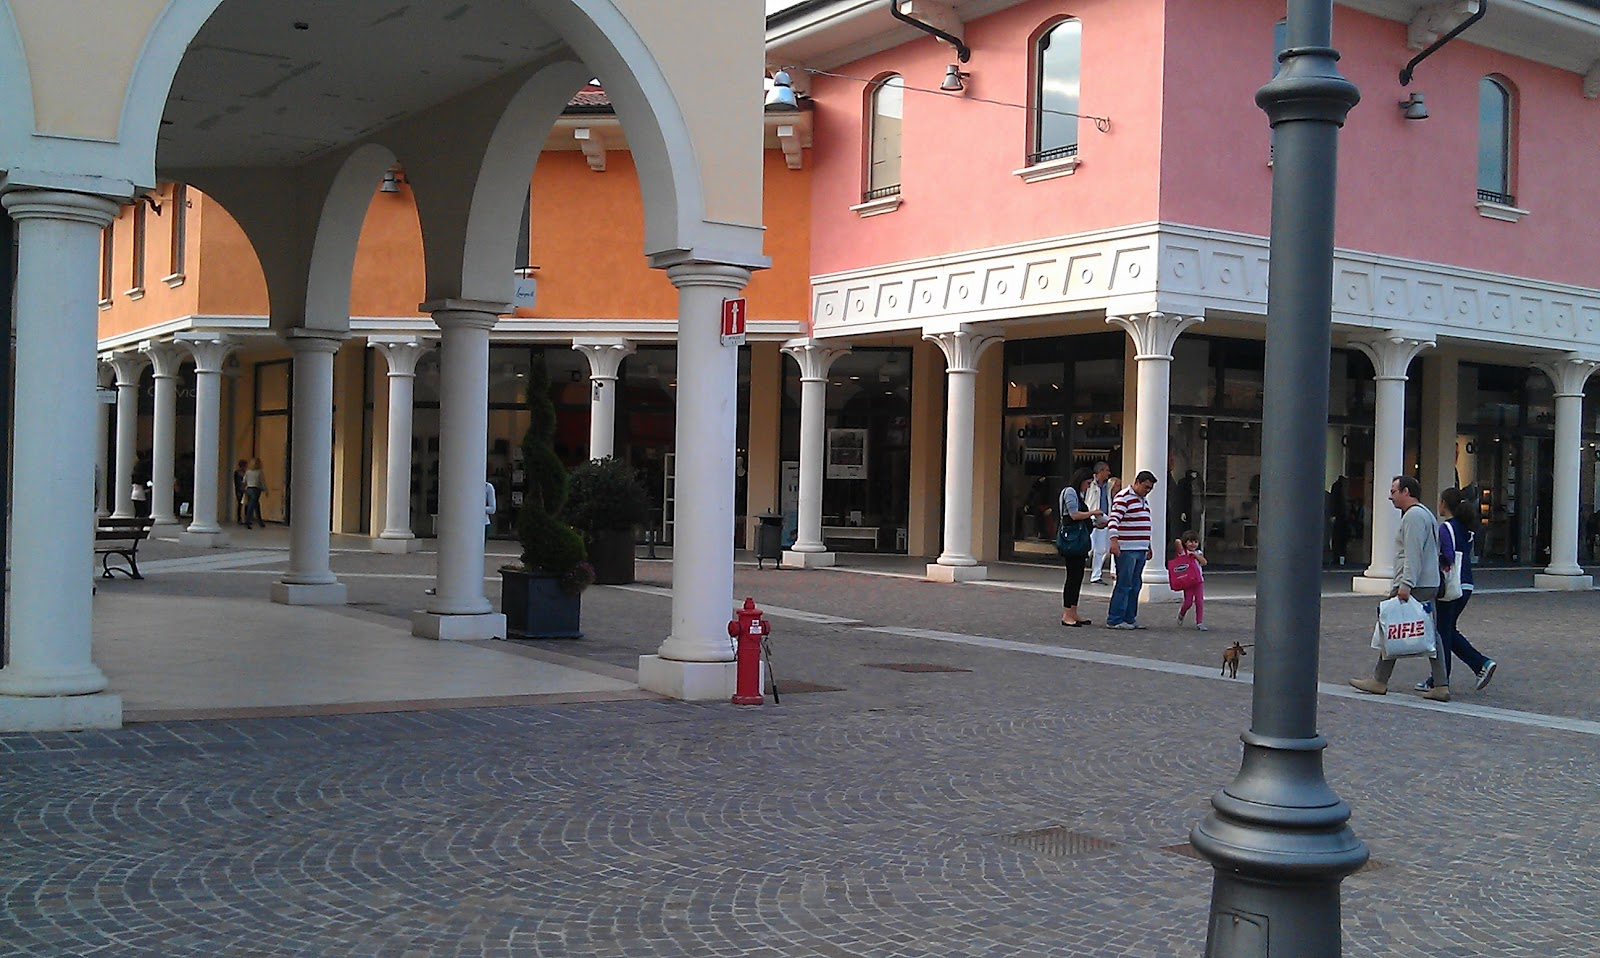 From valmontone fashion district Rome Shopping Fashion District Factory Outlet - Travelsignposts